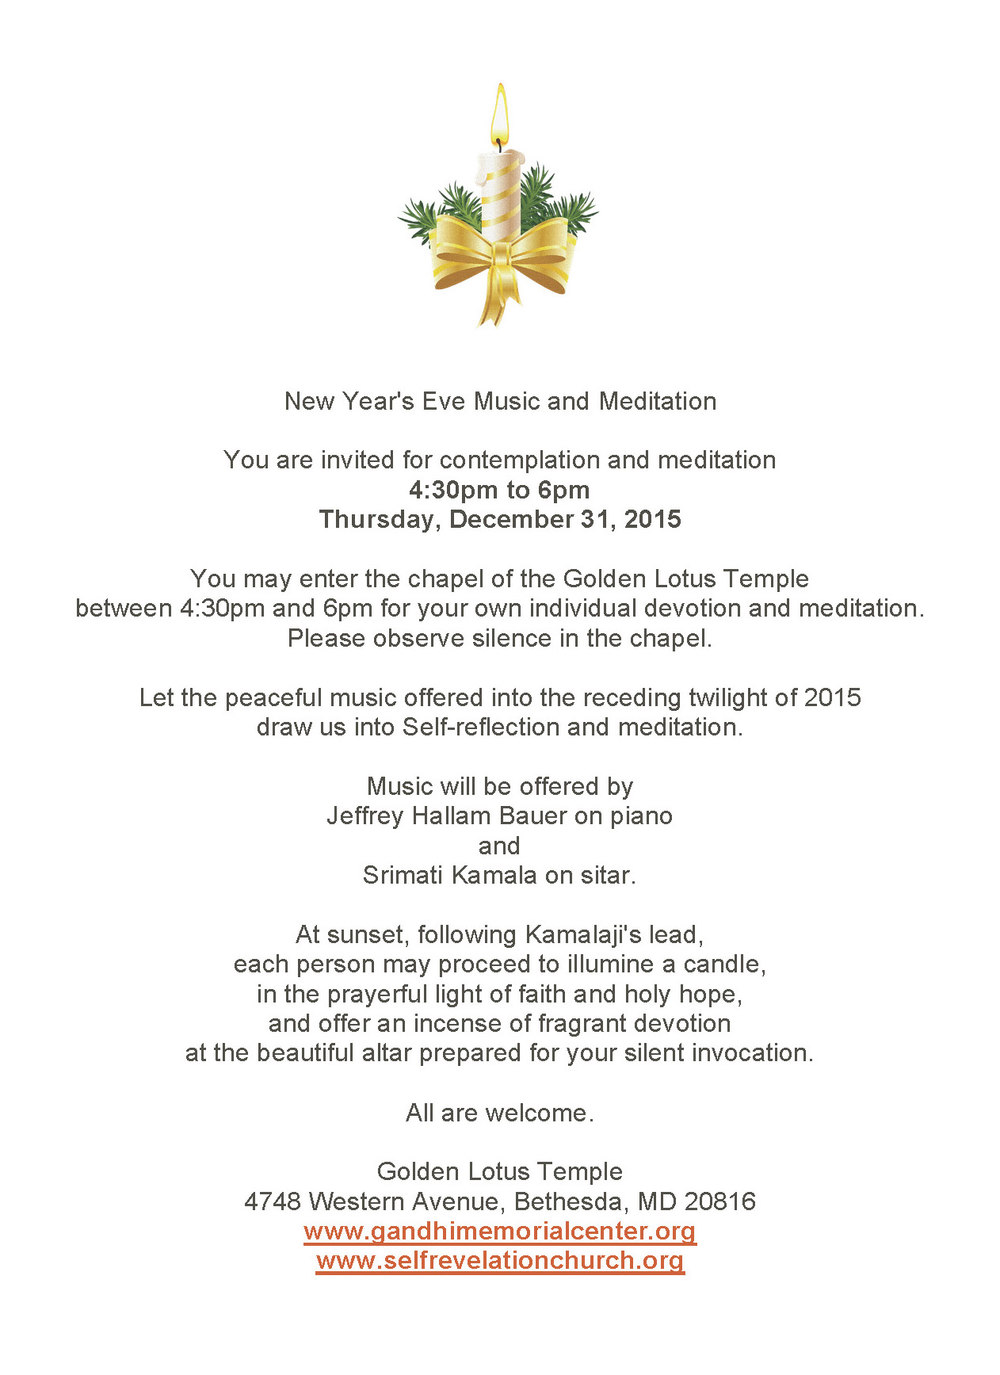 New Year's Eve Music And Meditation